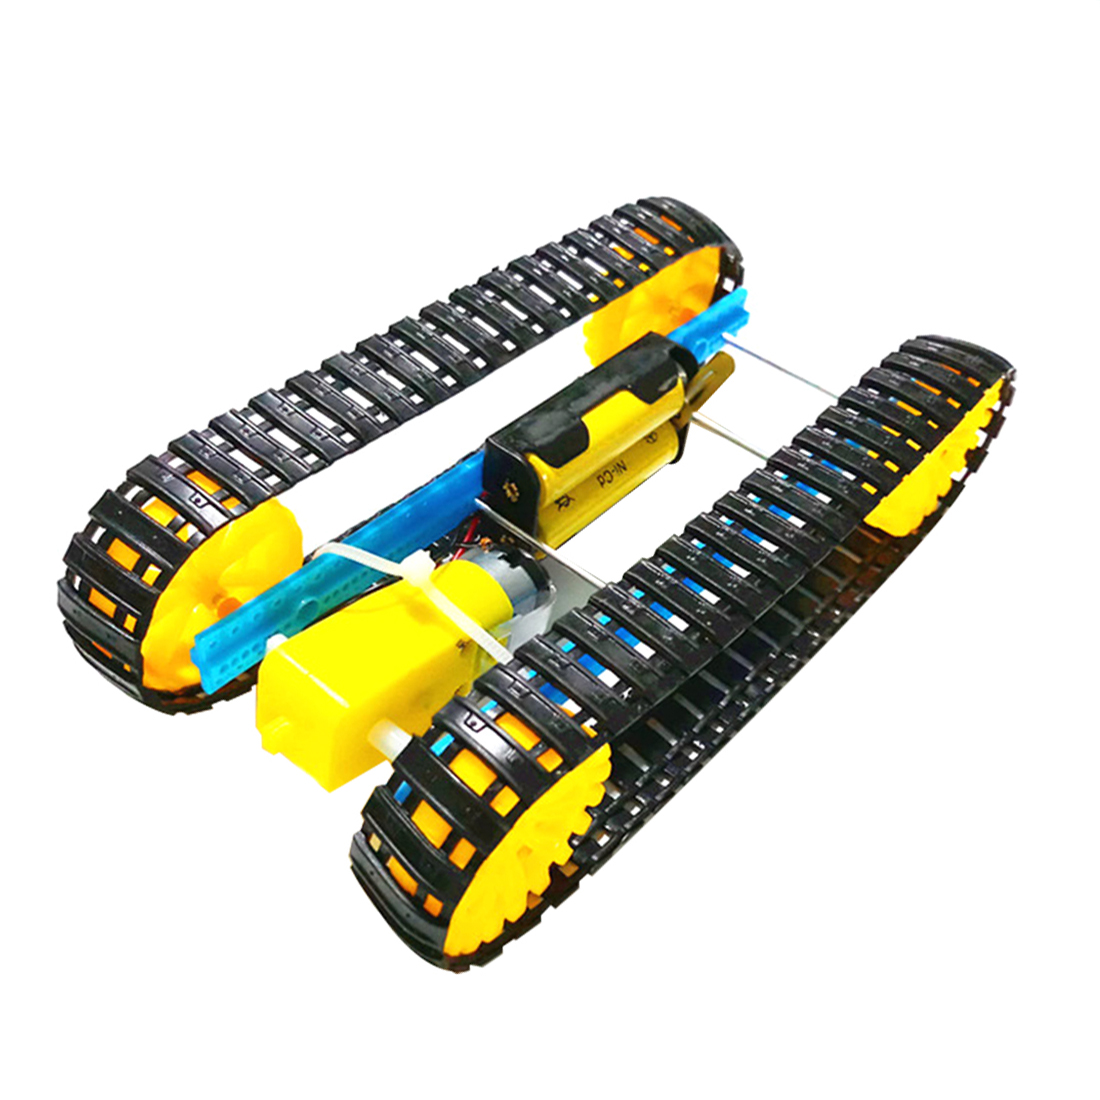 Smart Tank Chassis Handmade Educational Electric Robot Robotic Car Crawler Caterpillar Vehicle DIY Assembled For Children Toy